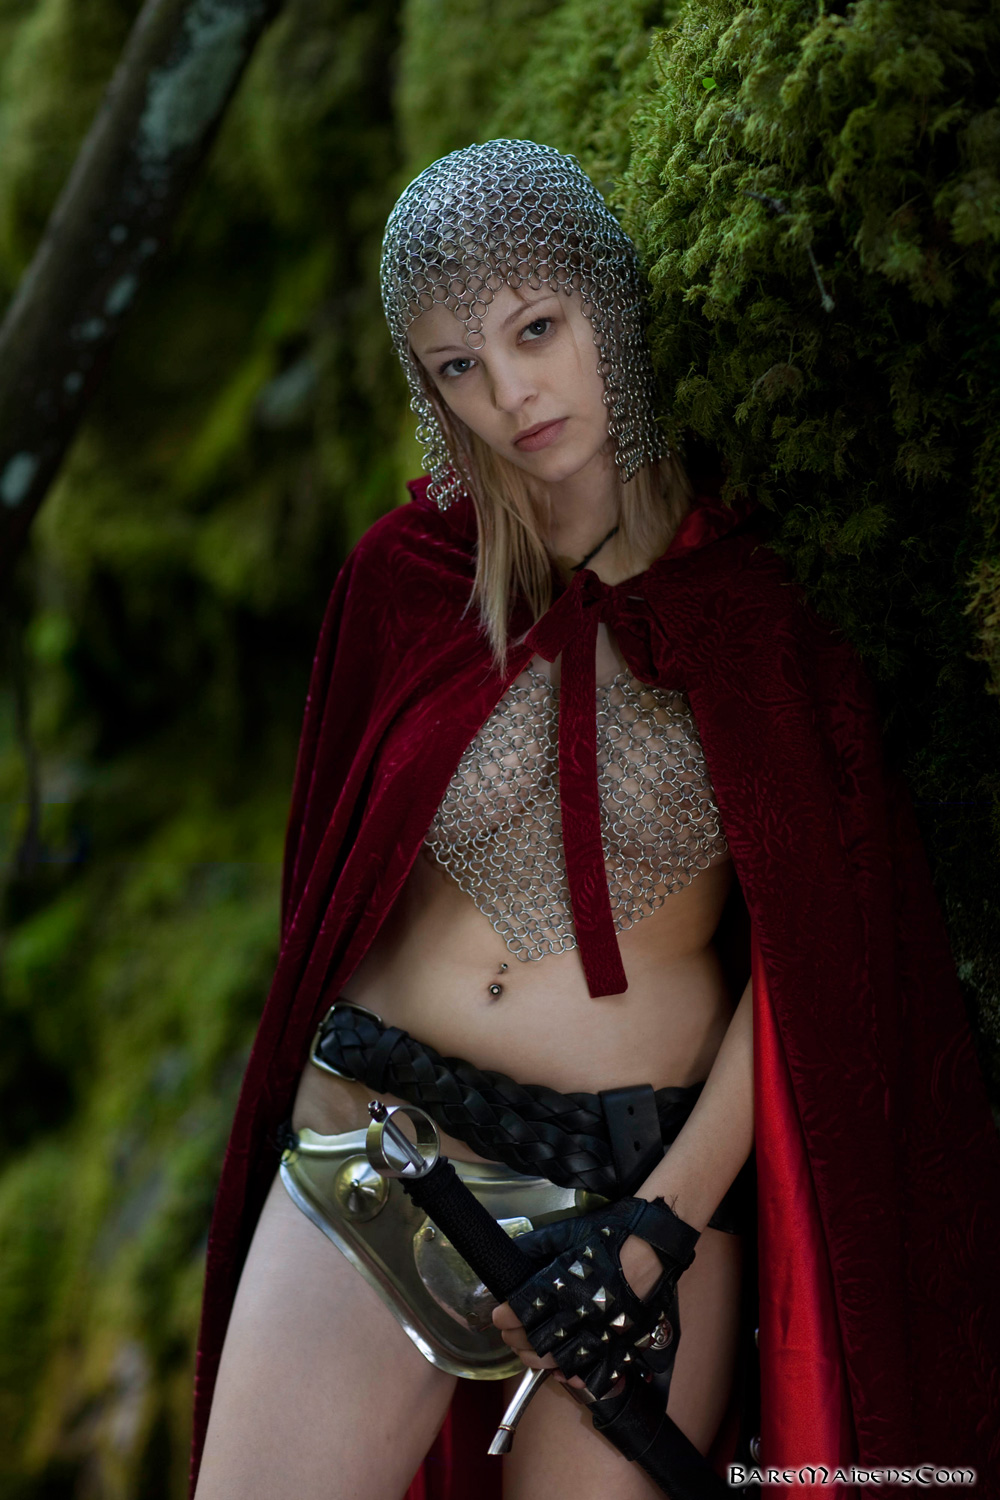 Remarkable, this Bree Daniels cosplay warrior nude pictures gallery can suggest